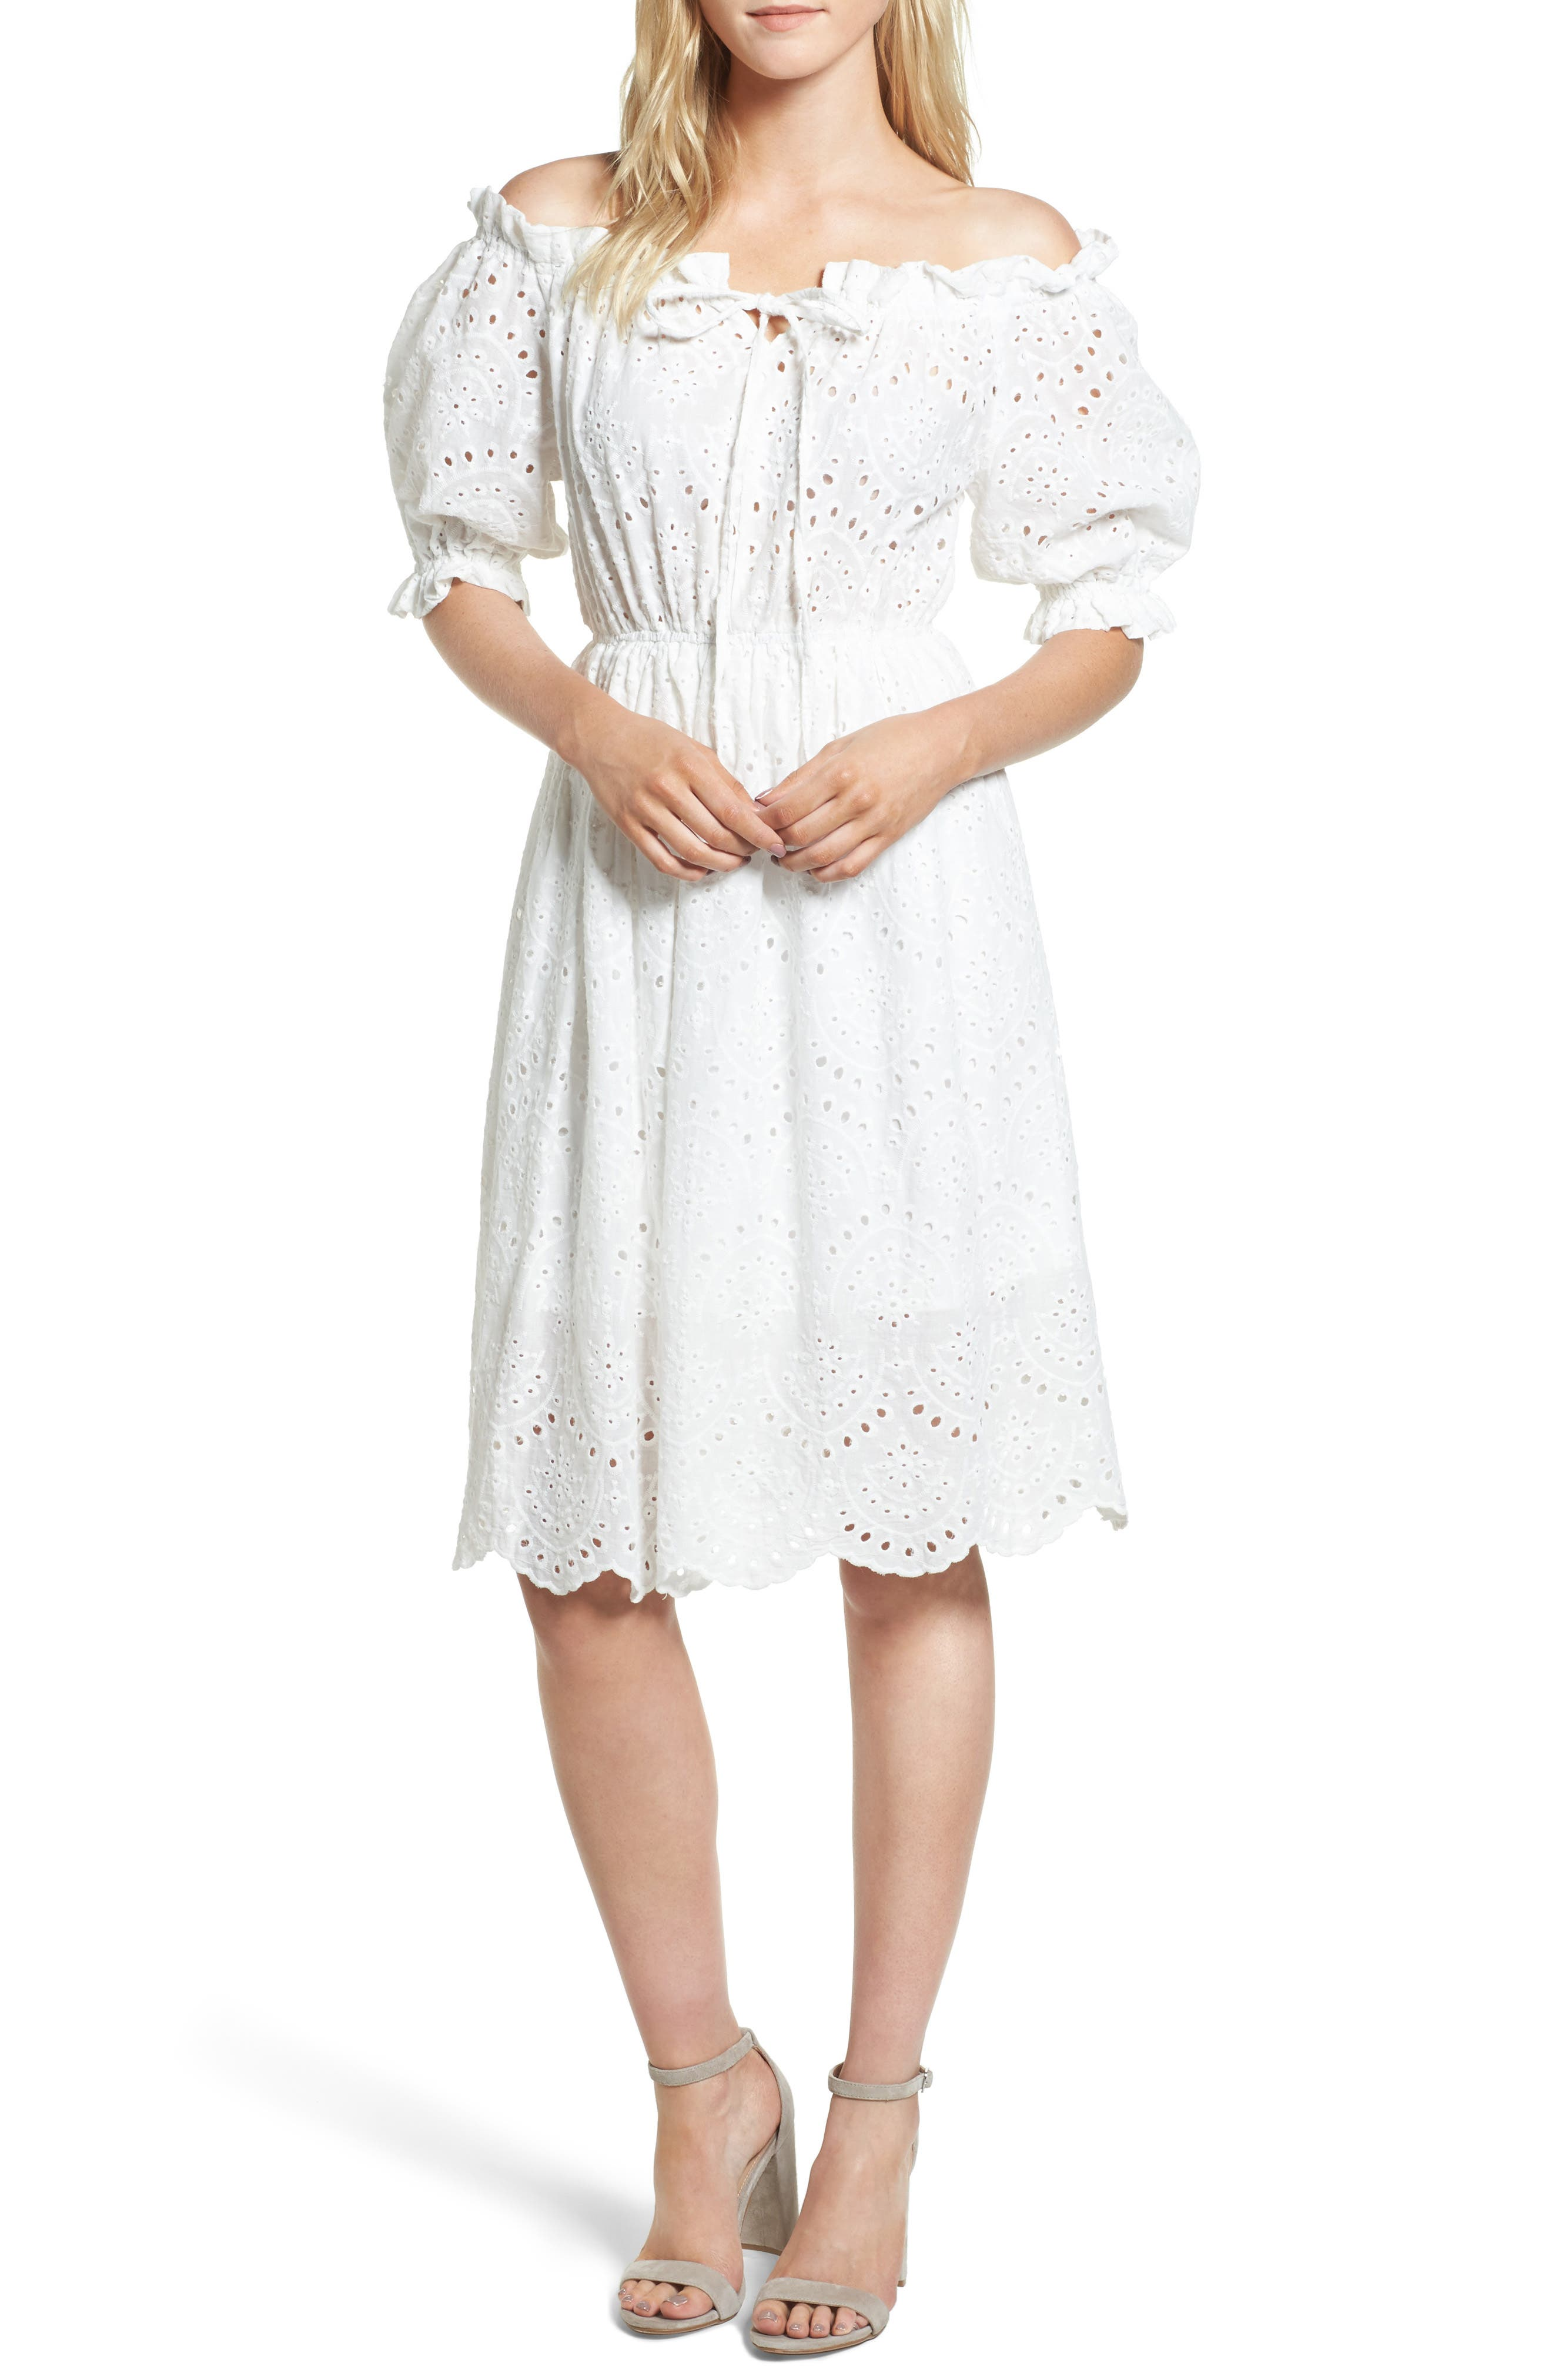 The White Party Off the Shoulder Dress,                         Main,                         color, White